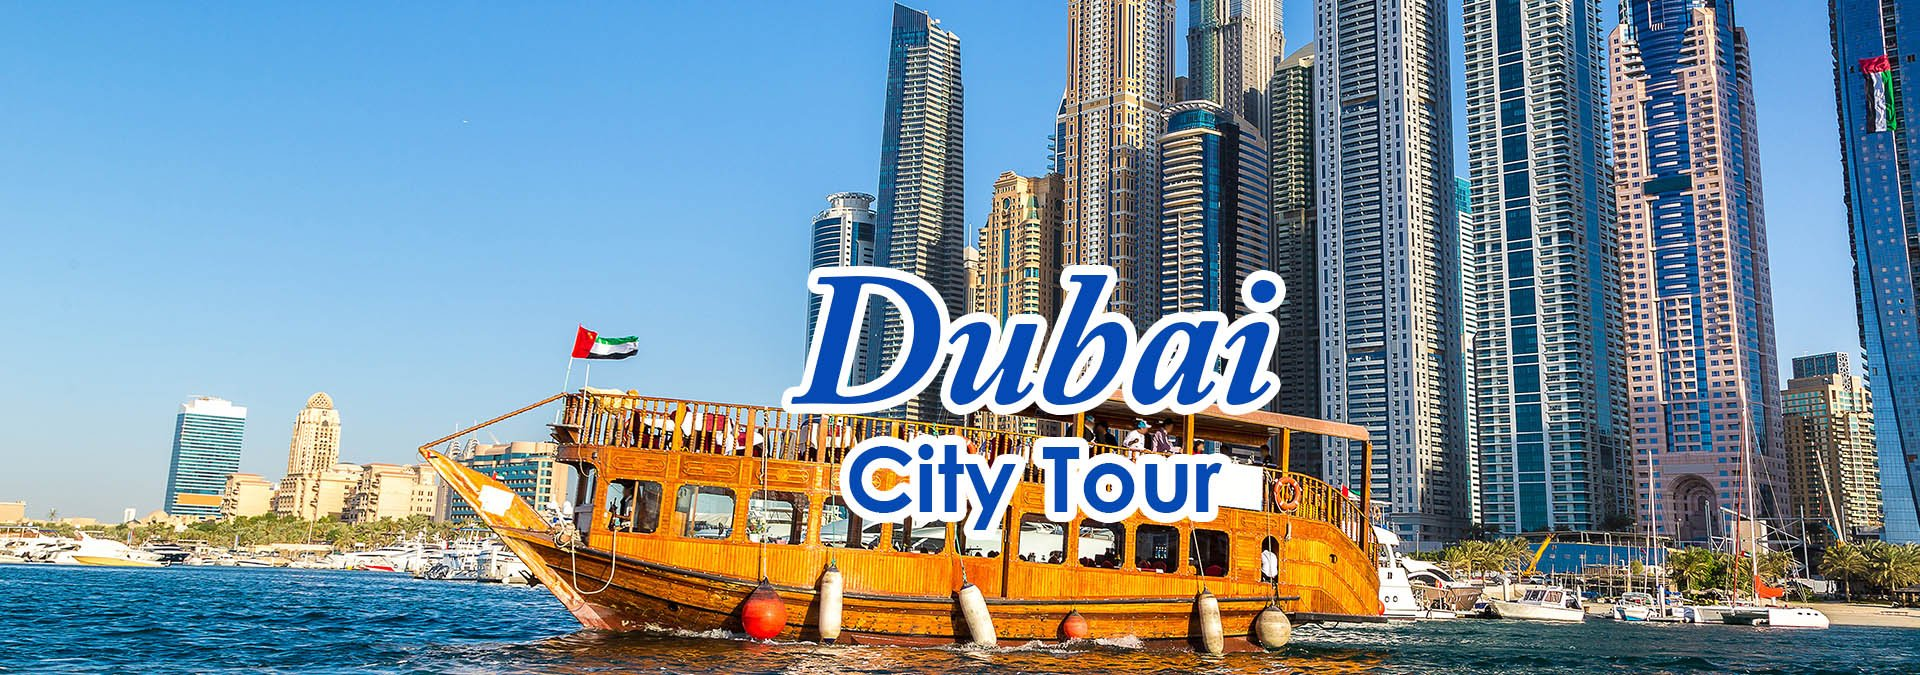 Day Tours In Dubai City